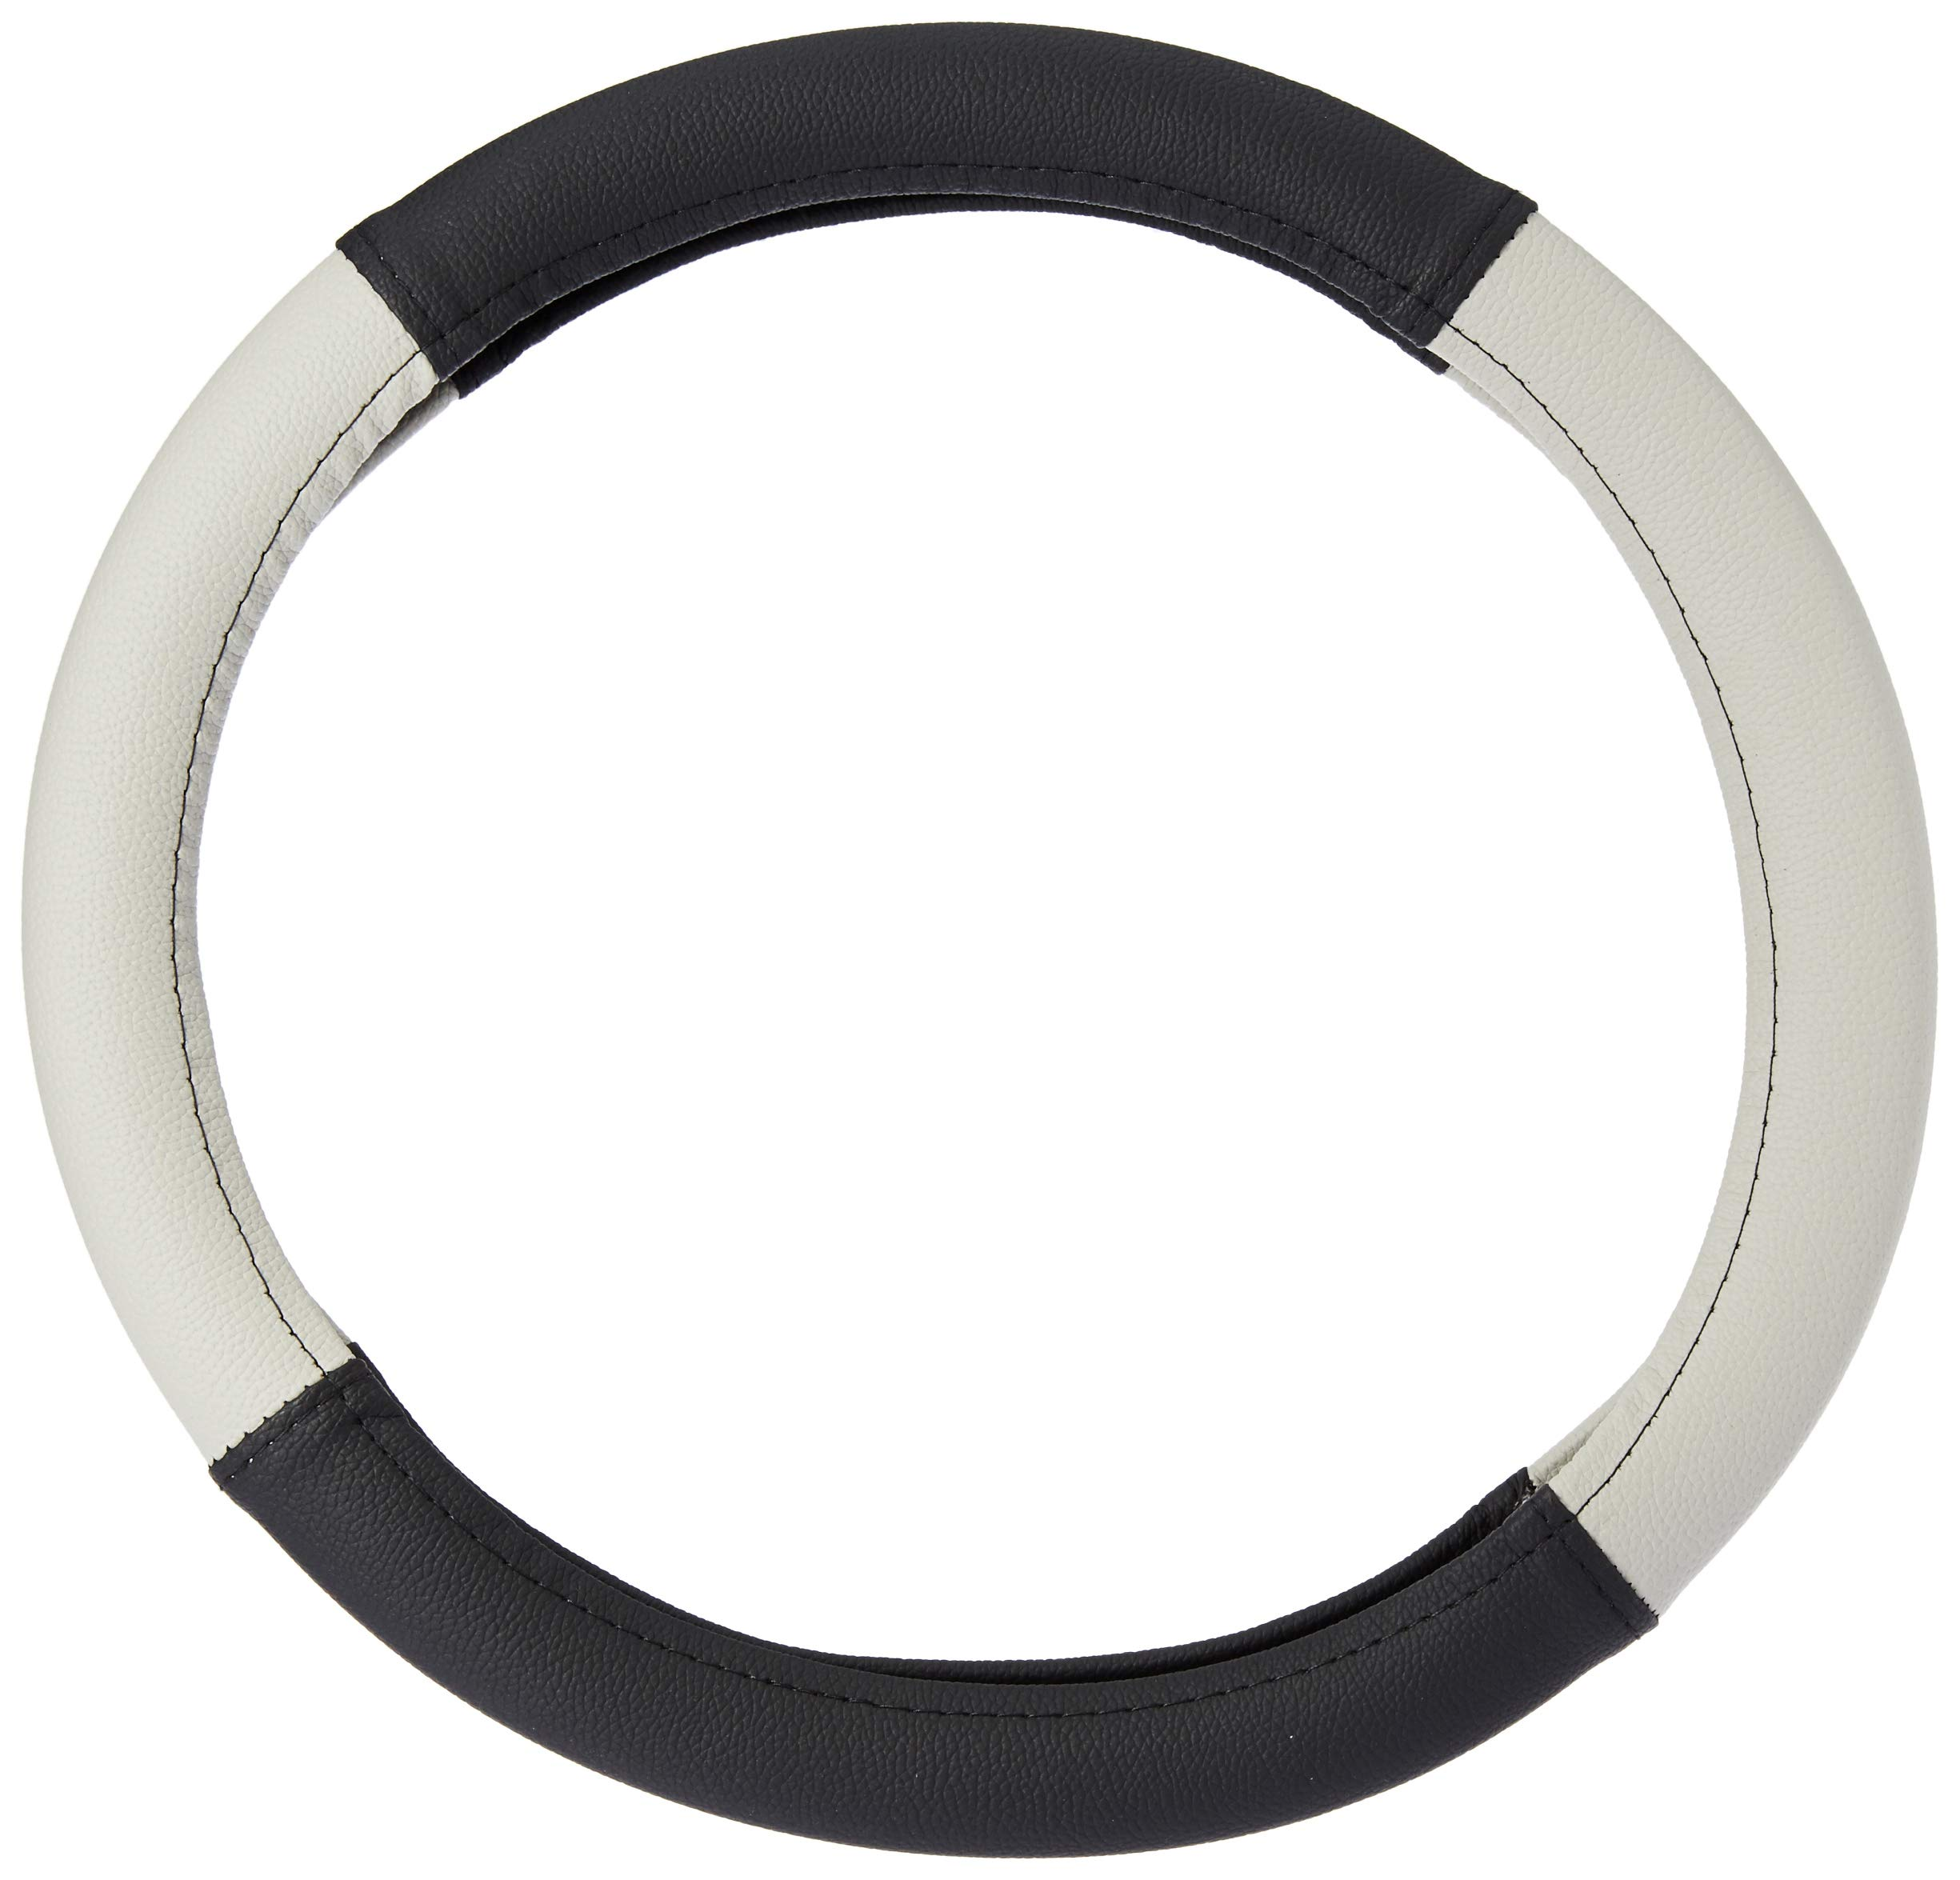 Amazon Brand - Solimo Steering Cover (Small), Grey product image